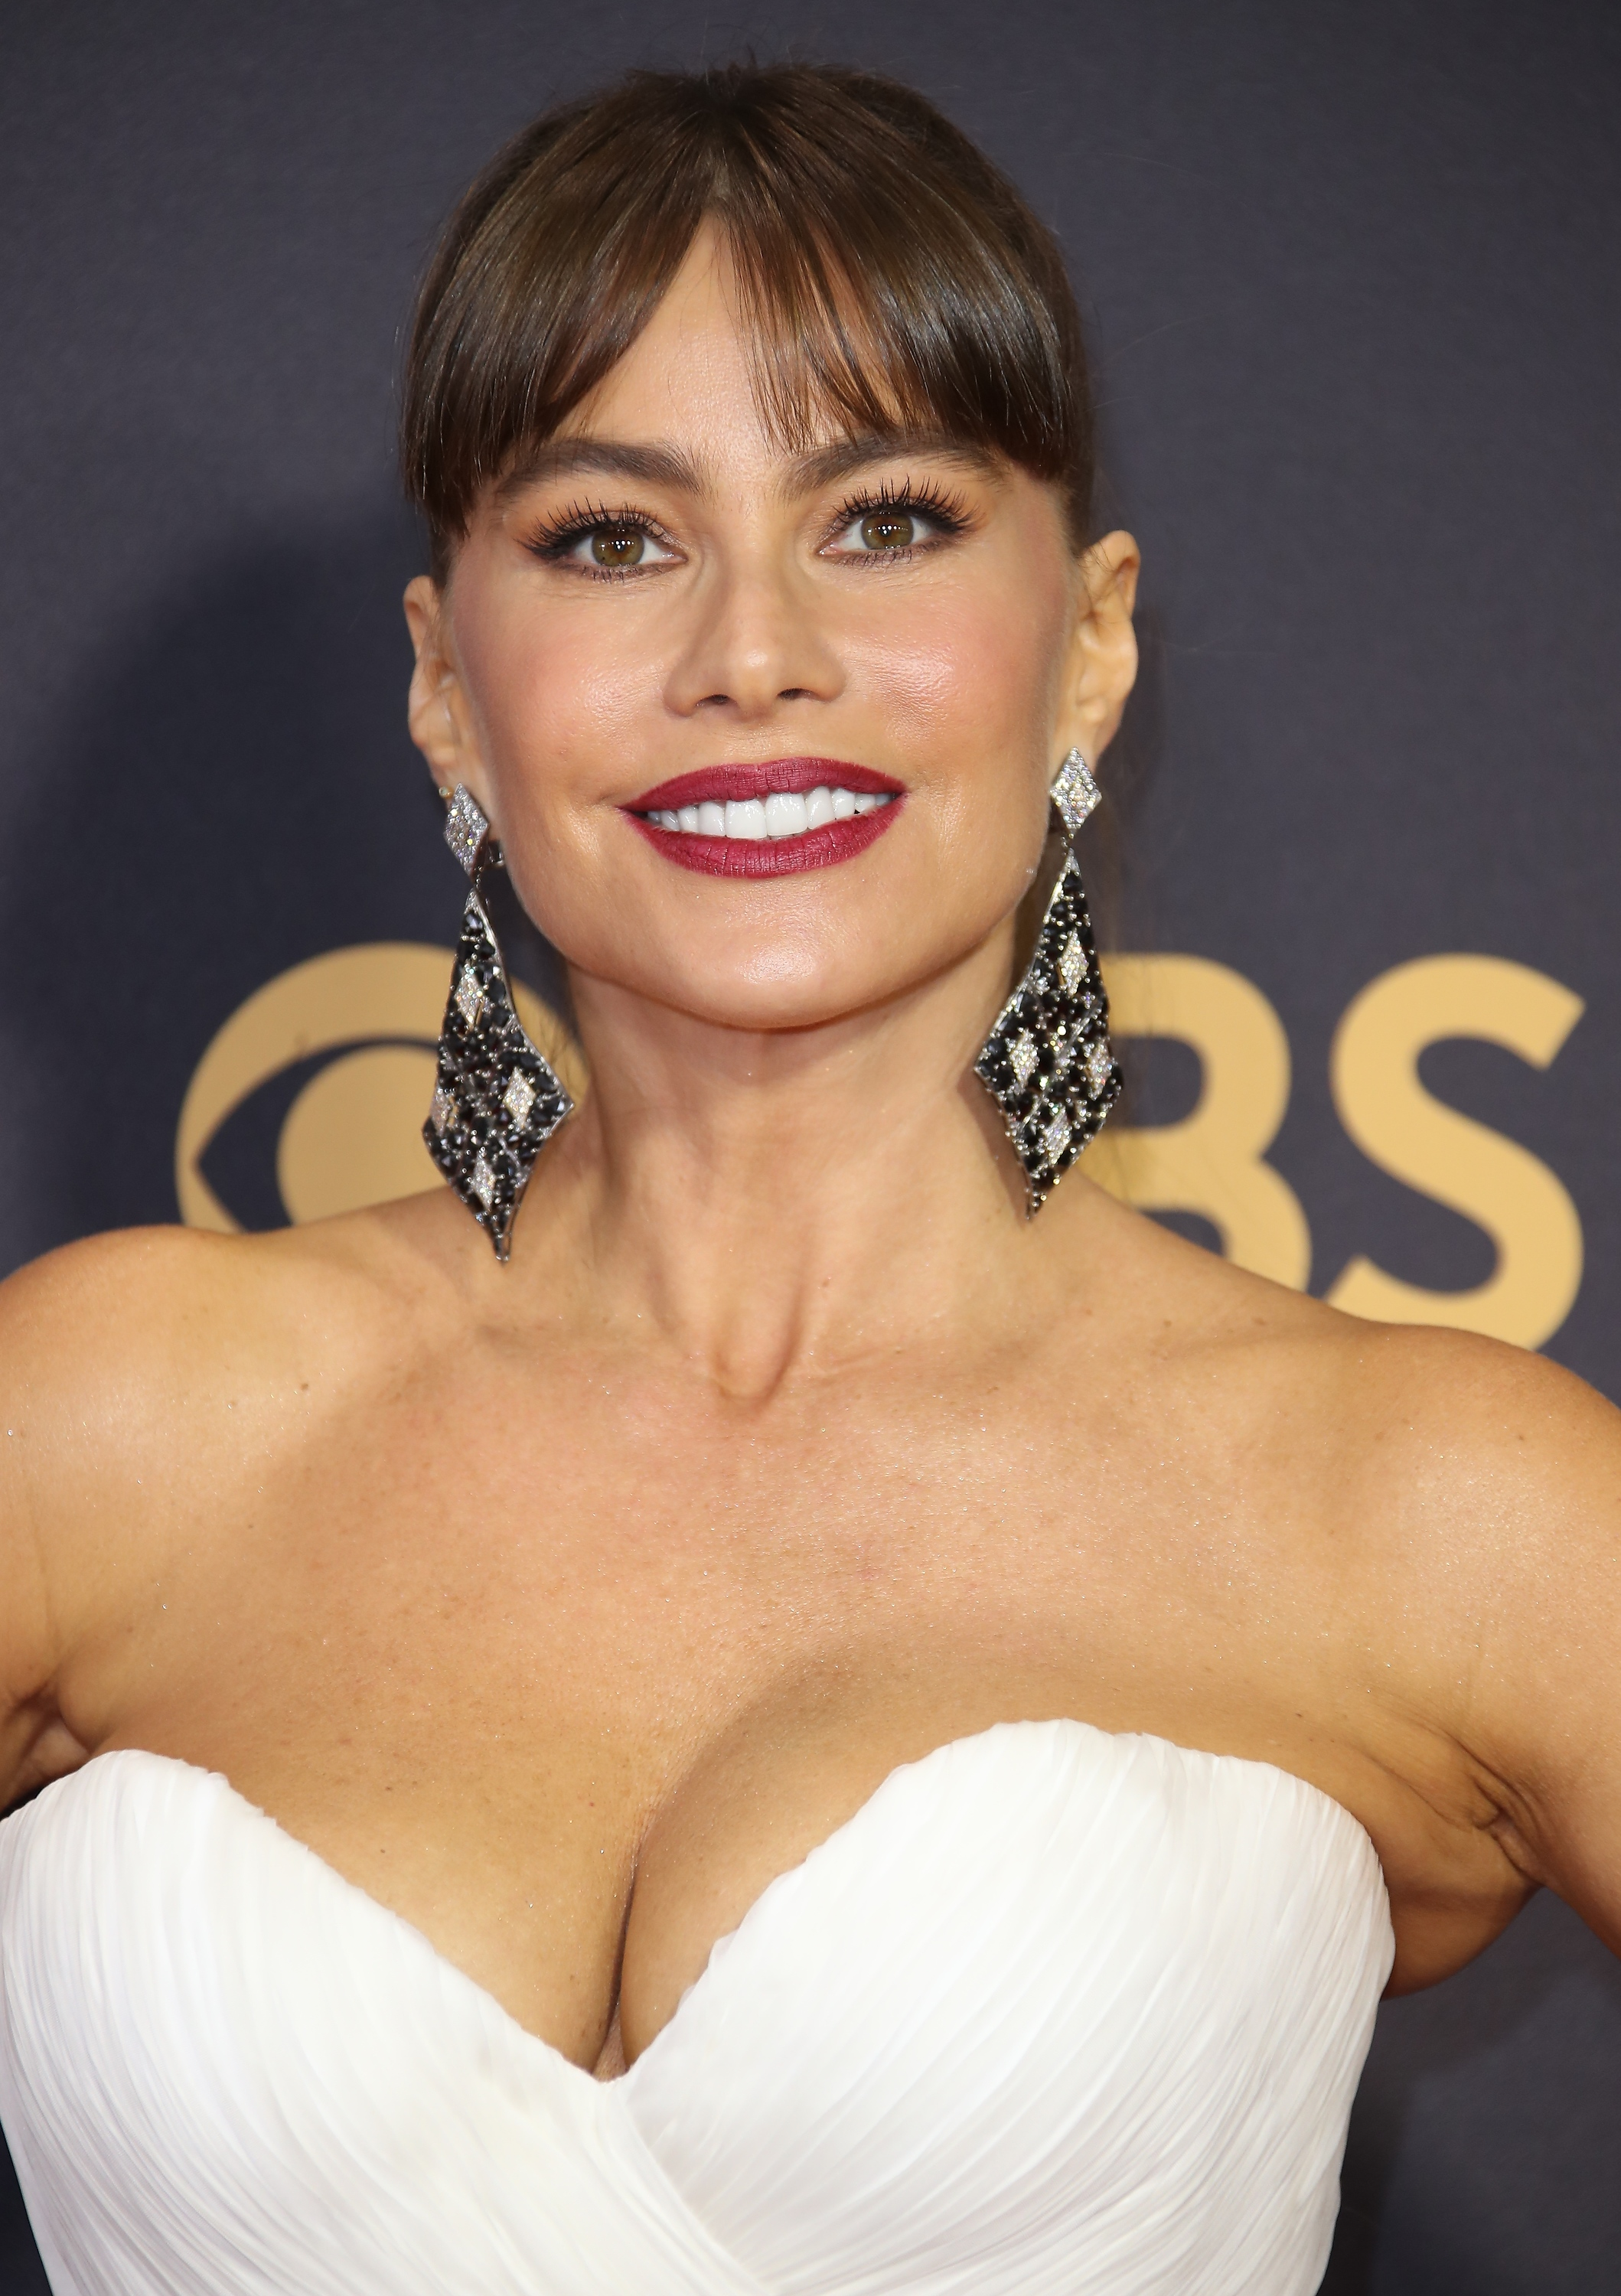 "<p><em>Modern Family </em>star Sofia Vergara made a show-stepping entrance on the red carpet at <a href=""http://style.nine.com.au/2017/09/18/08/21/style_emmy-awards-2017-red-carpet"" target=""_blank"">this year's Emmy Awards </a>in a show-stopping Mark Zunino gown, but it was her luminous makeup and sleek hair that made the biggest impression.</p> <p>The actress swept up her long hair and blunt bangs into a elegant high-ponytail, the perfect complement to match her bold mauve-coloured lip and glowing skin. </p> <p>Despite the Emmys   delivering <a href=""http://style.nine.com.au/2017/09/18/15/30/style_best-and-worst-emmy-looks"" target=""_blank"">a diverse red carpet</a> in the sartorial stakes, the awards are equally about celebrating the boldest and bravest beauty looks.</p> <p>In fact, there were so many amazing looks we simply cannot choose the one we love best. So instead, we're bringing them all.</p> <p>Click through to see the best beauty looks from the 2017 Emmy Awards.</p>"